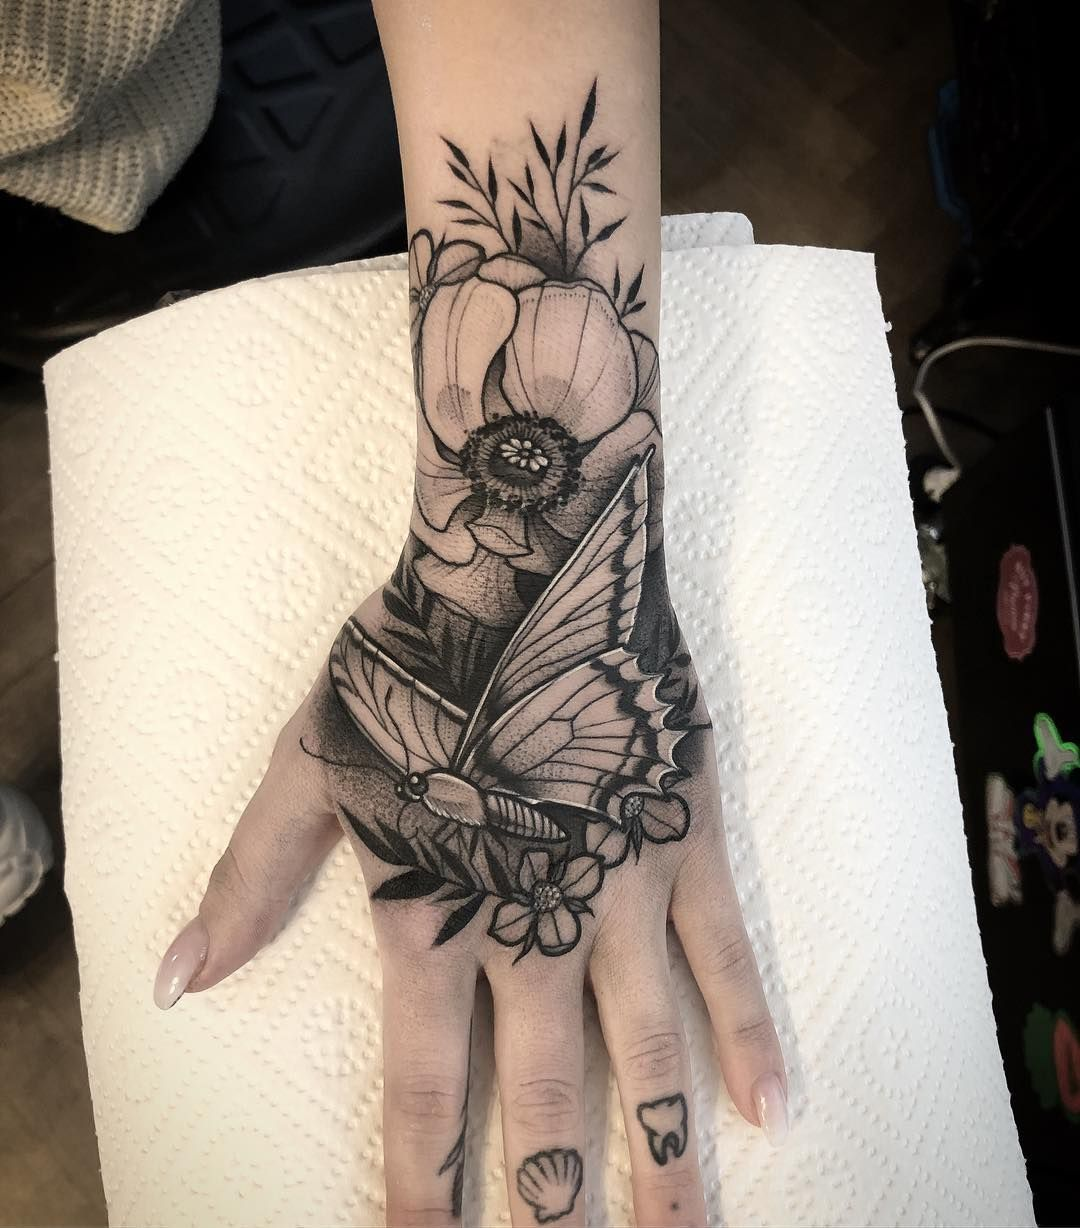 Another One And I Want More Blacktattoo Tattoo Tattoos Hand Handtattoo Butterfly Flowers F Hand Tattoos Hand Tattoos For Women Hand Tattoos For Guys